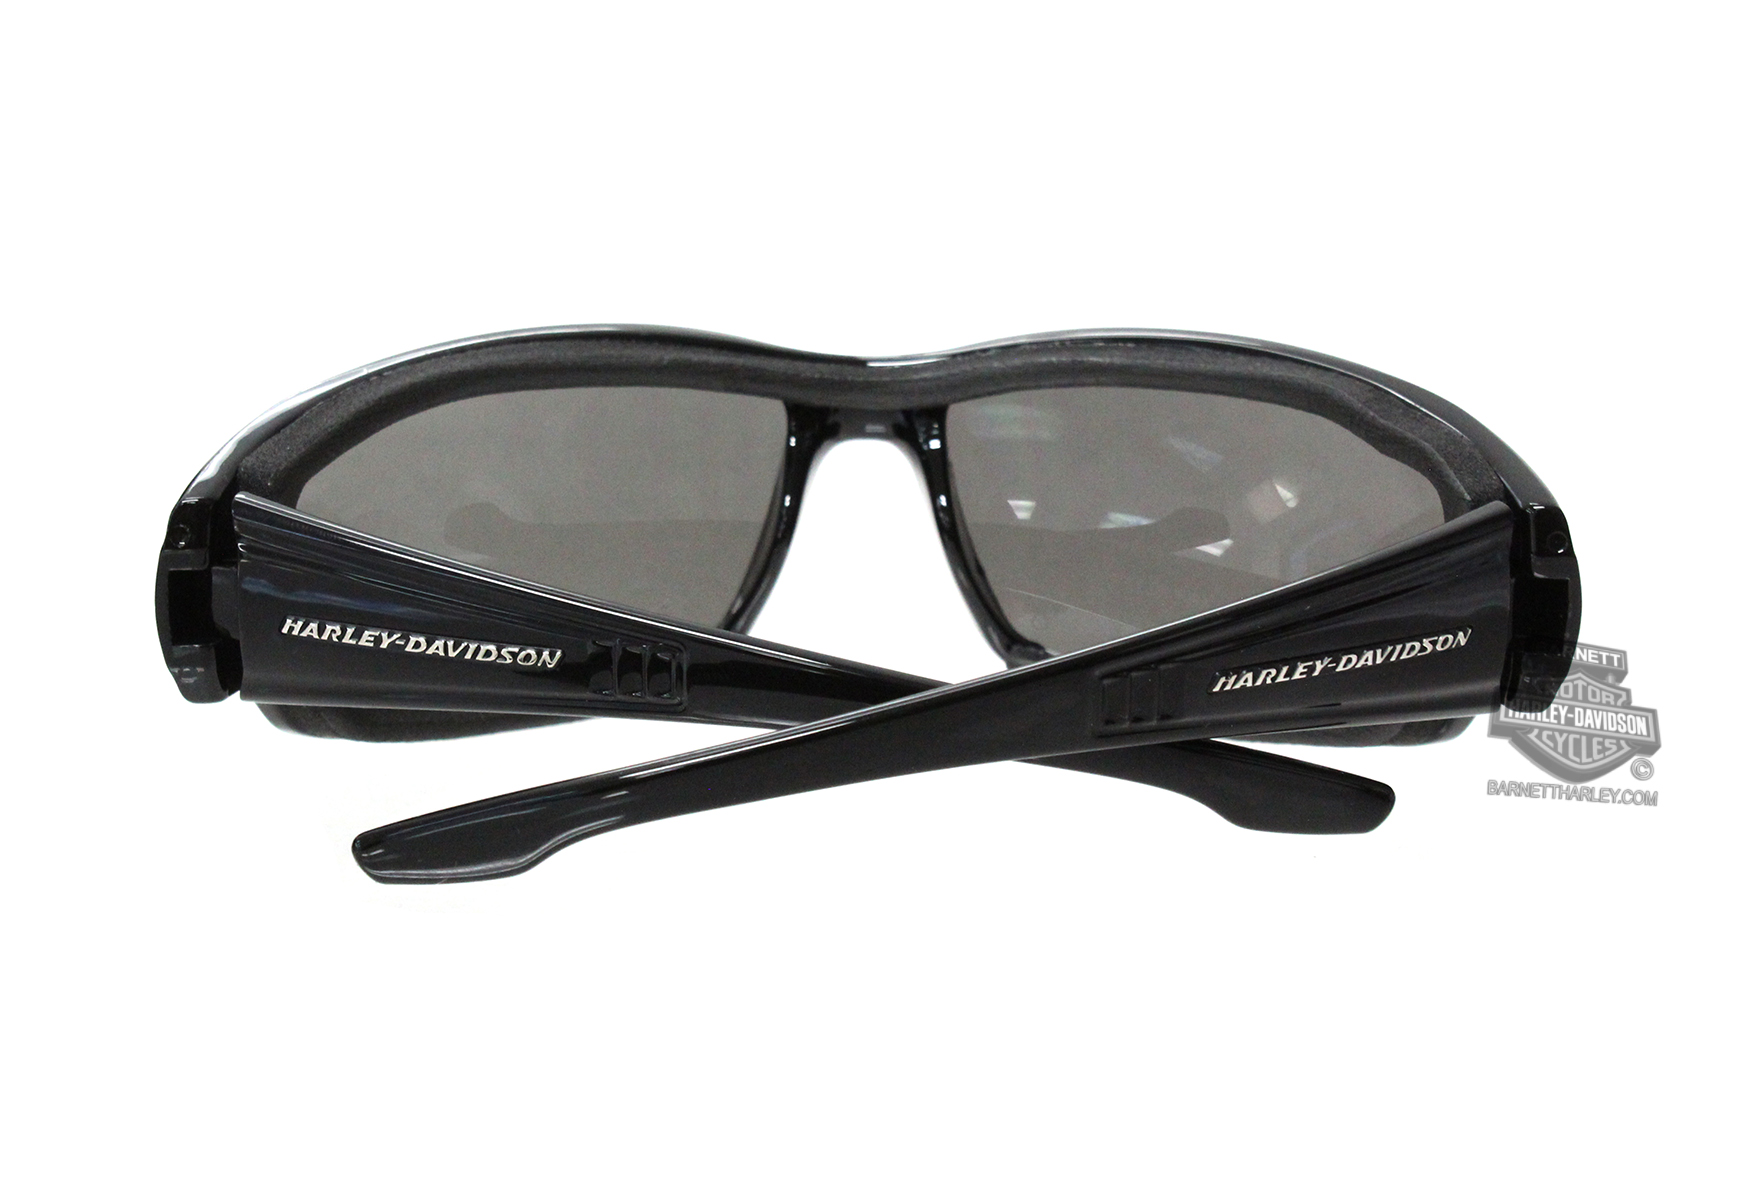 9fb543b8a0b ... Harley-Davidson® HD Drive 2 Smoke Grey Lens in a Gloss Black Frame  Sunglasses by Wiley X®. Tap to expand